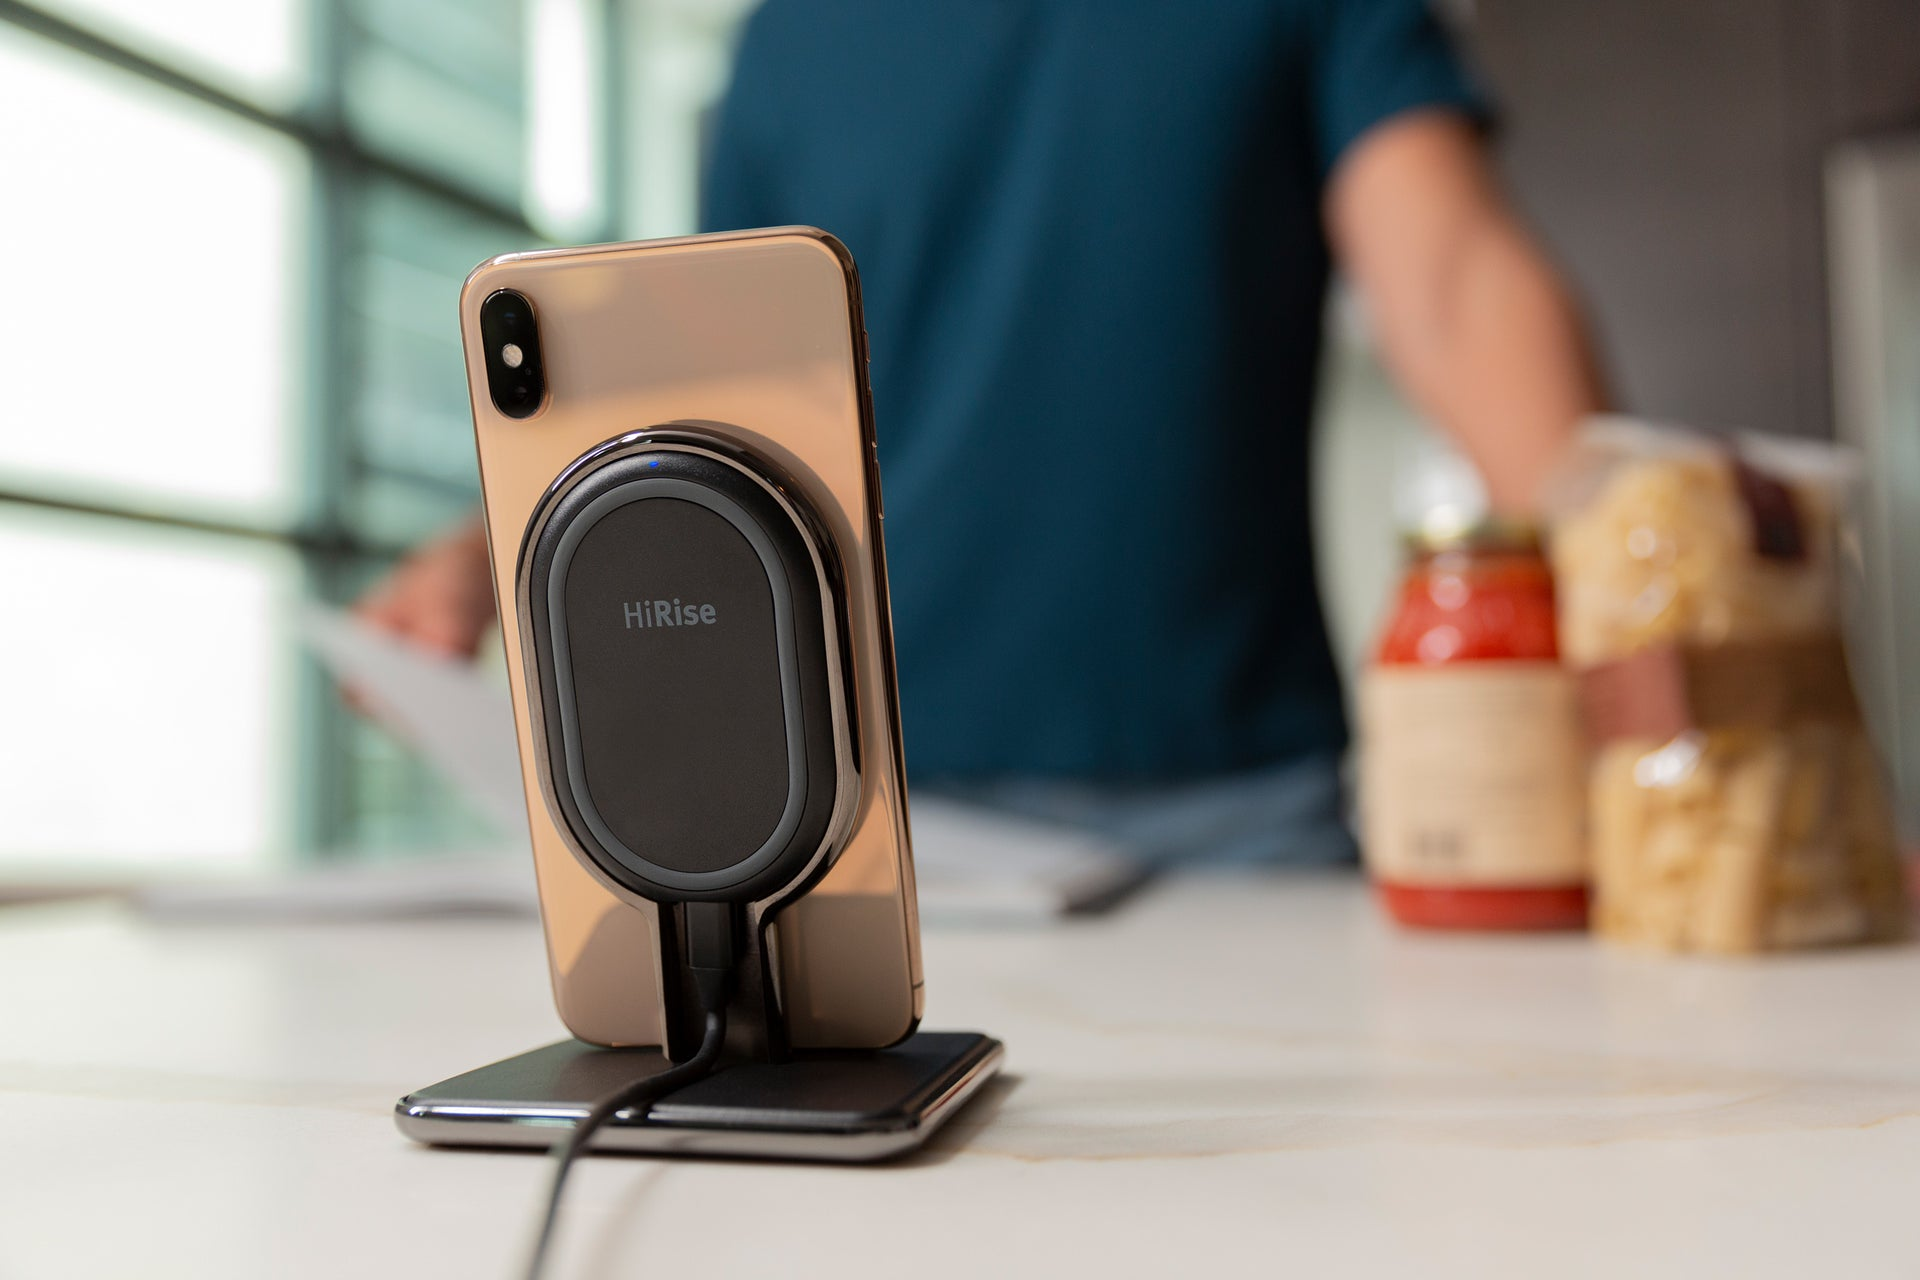 HiRise Wireless: Desktop wireless charger and portable